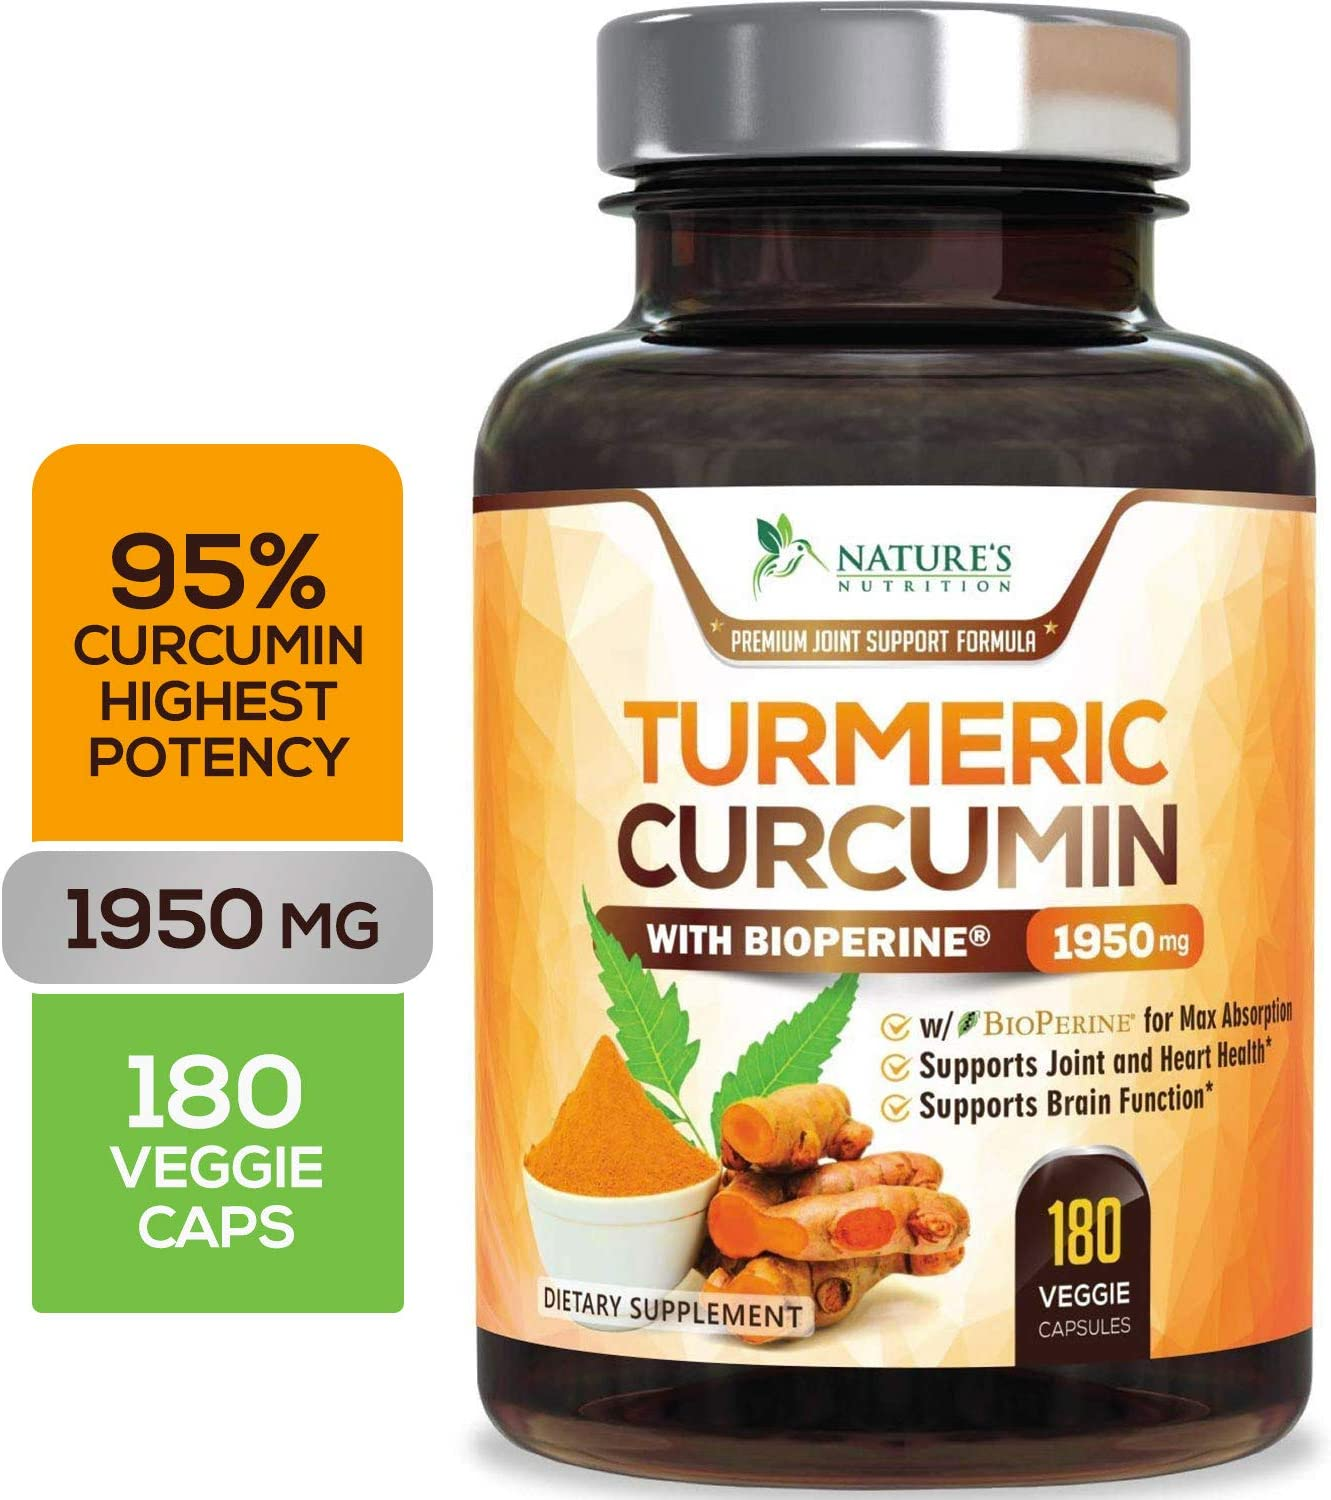 Turmeric Curcumin with BioPerine 95% Curcuminoids 1950mg with Black Pepper for Best Absorption, Made in USA, Most Powerful Joint Support, Turmeric Supplement Pills by Natures Nutrition - 180 Capsules: Health & Personal Care